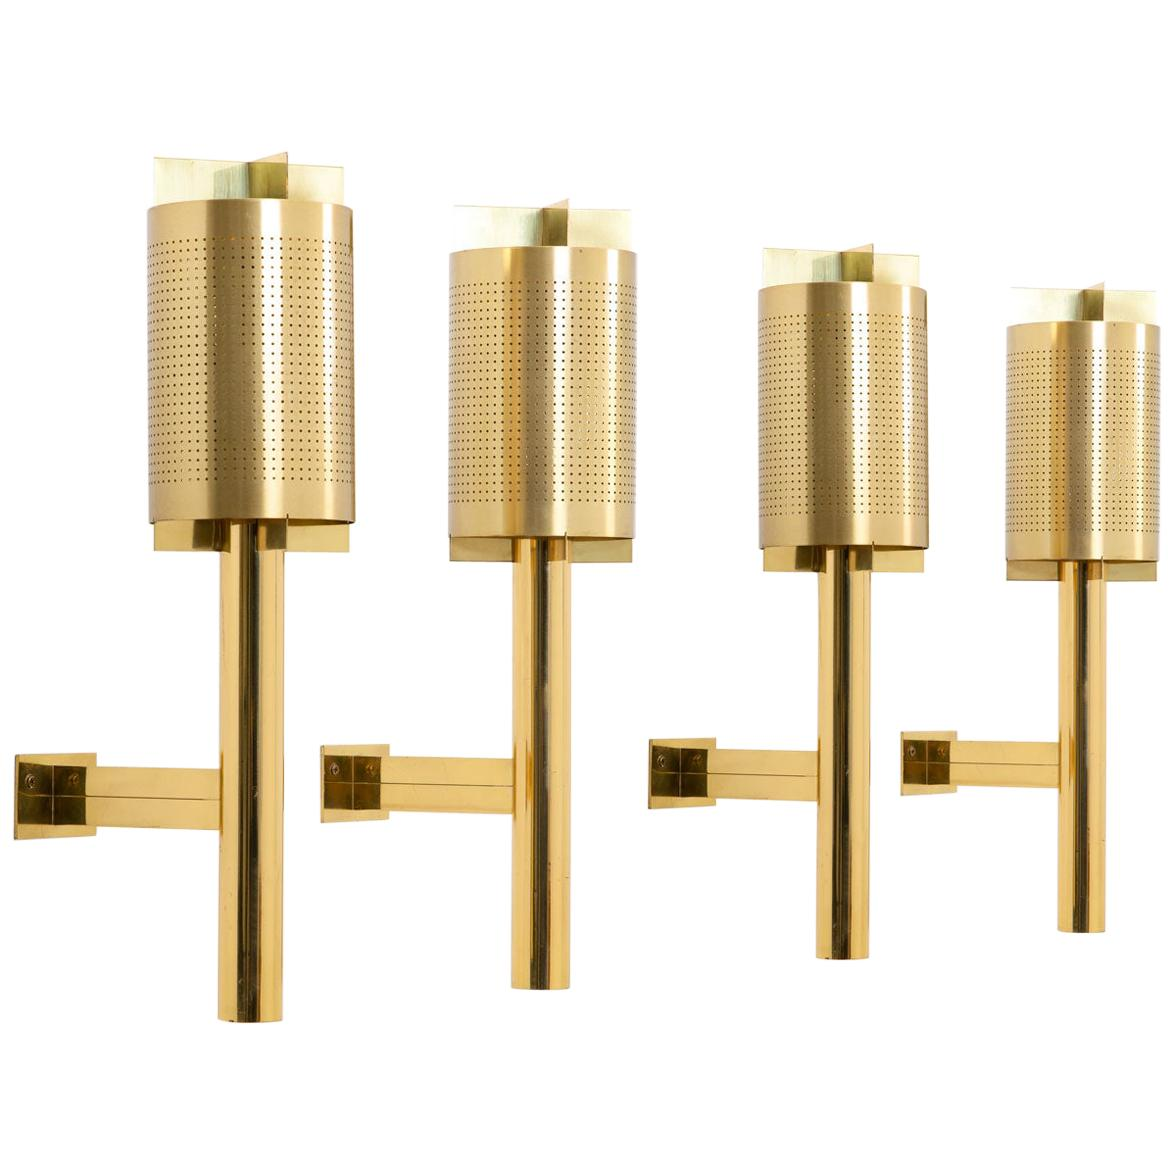 Large Midcentury Scandinavian Wall Sconces in Perforated Brass